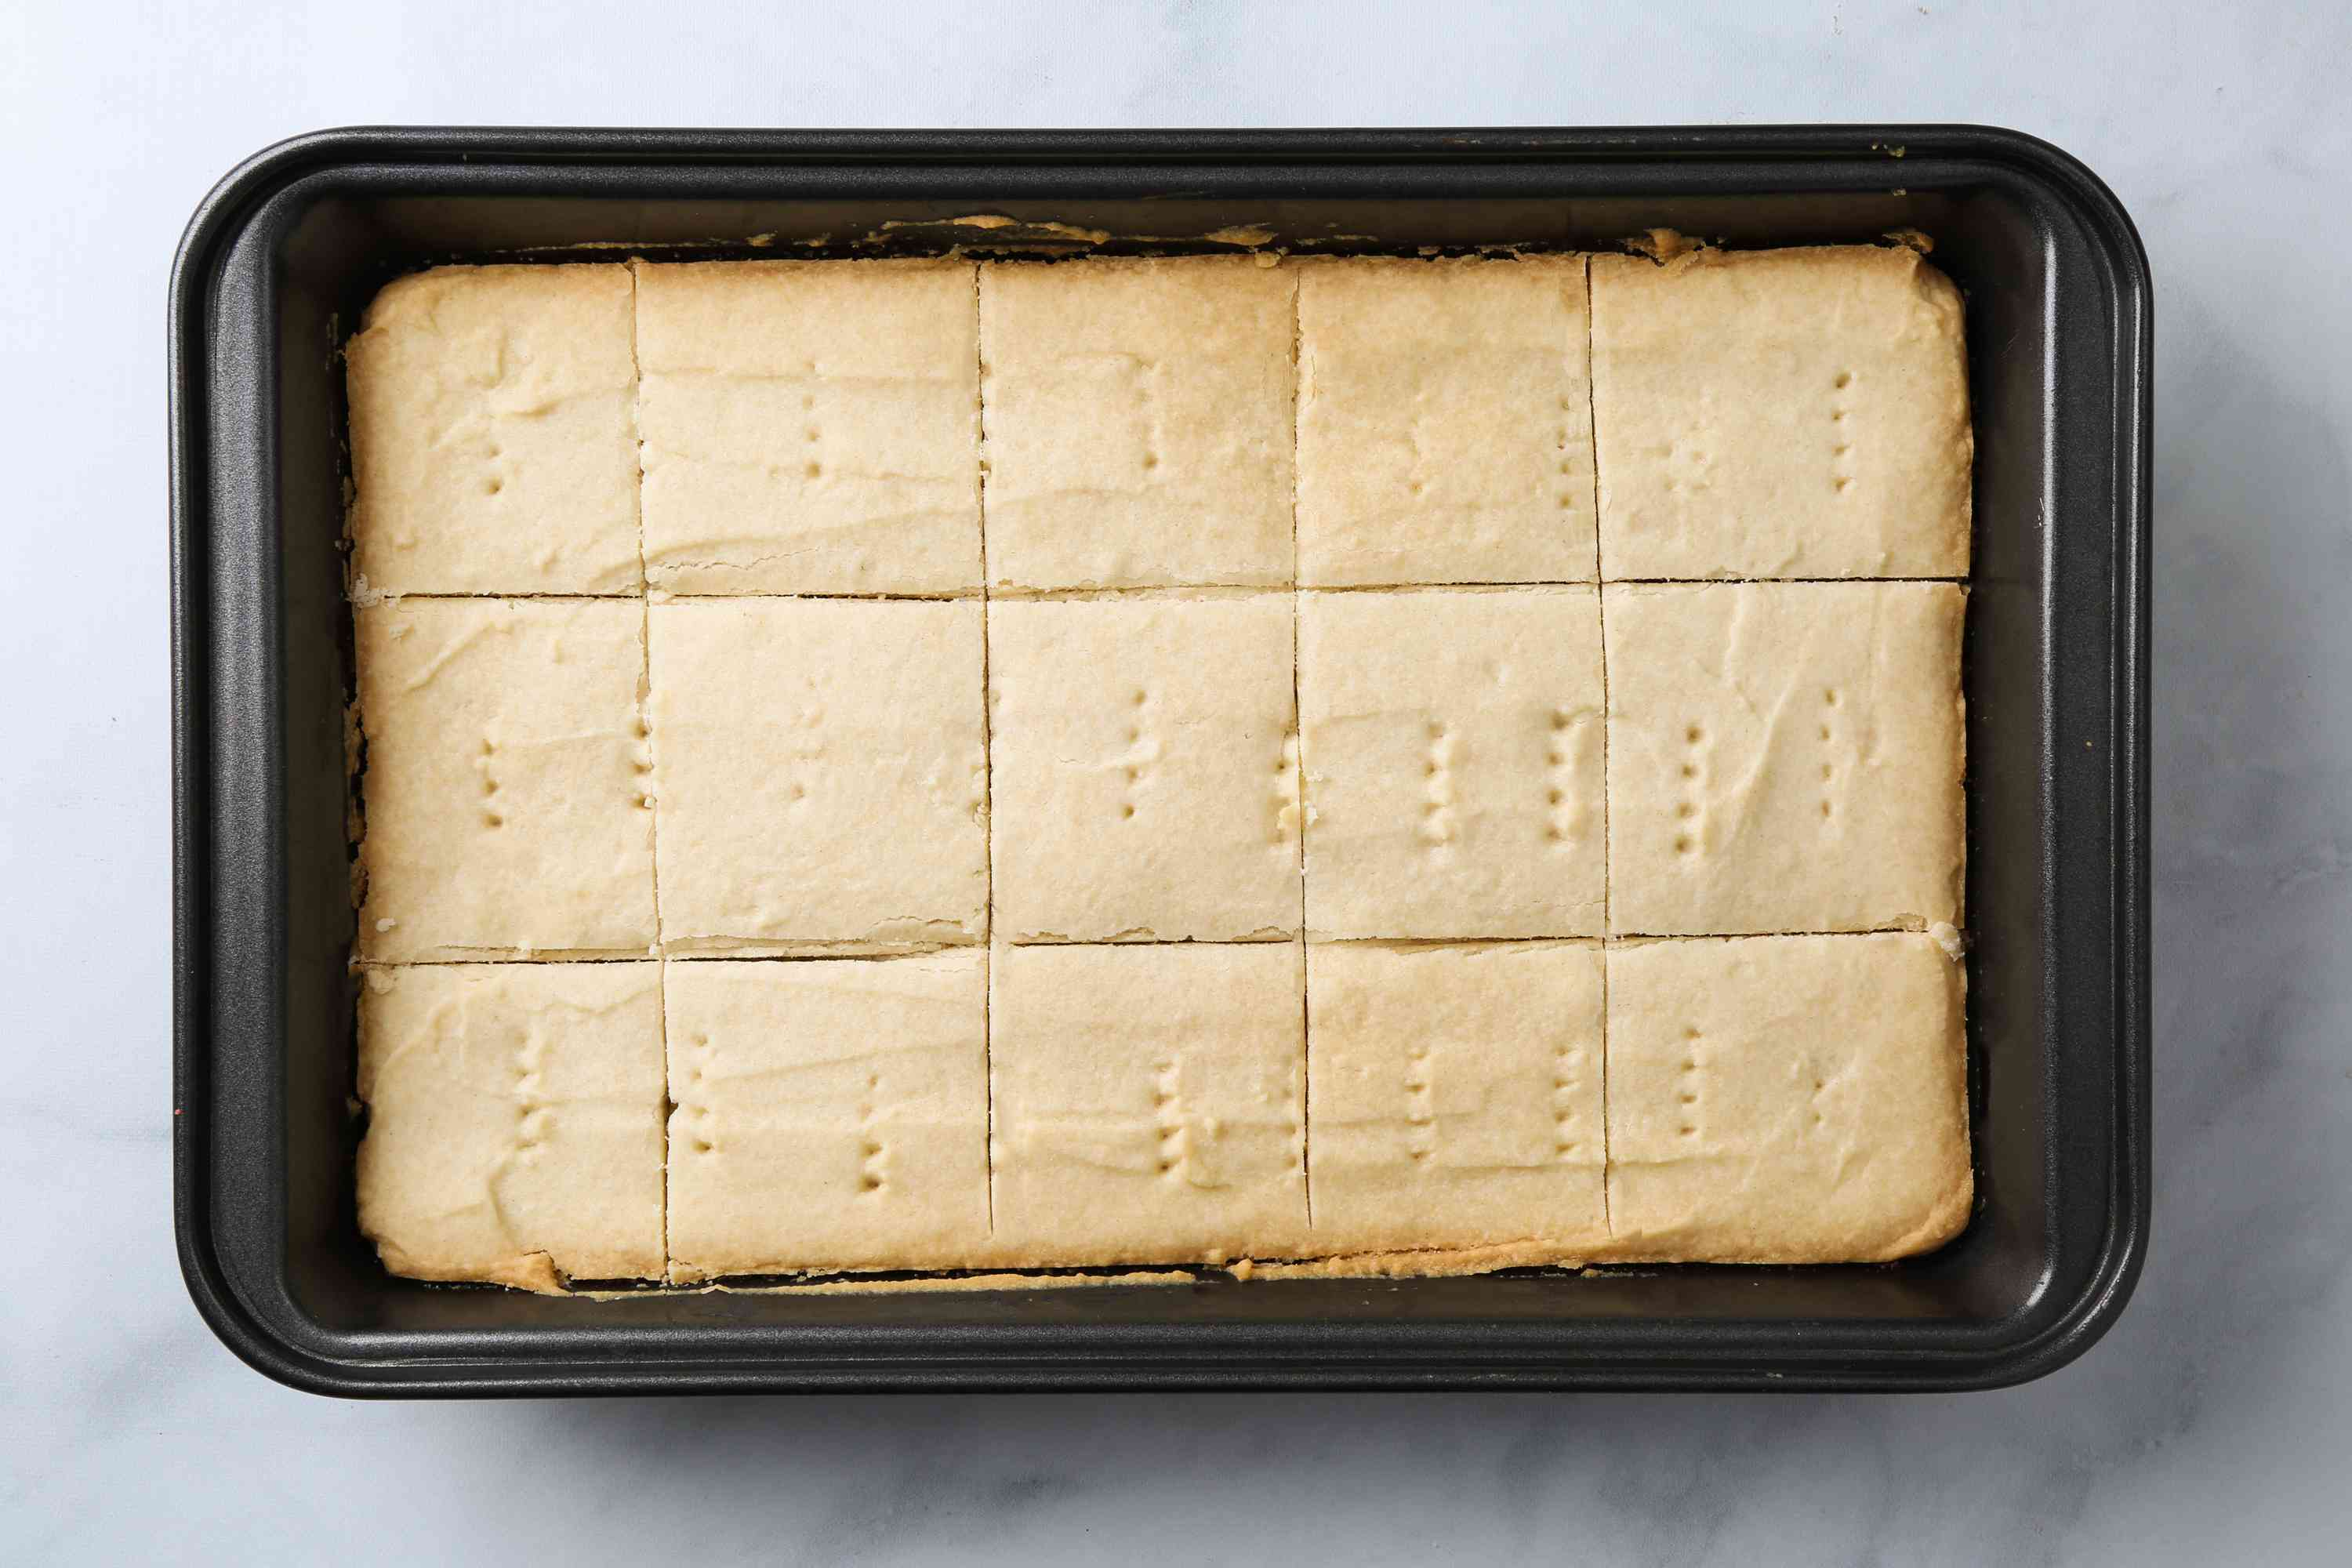 shortbread in a baking dish, sliced into pieces